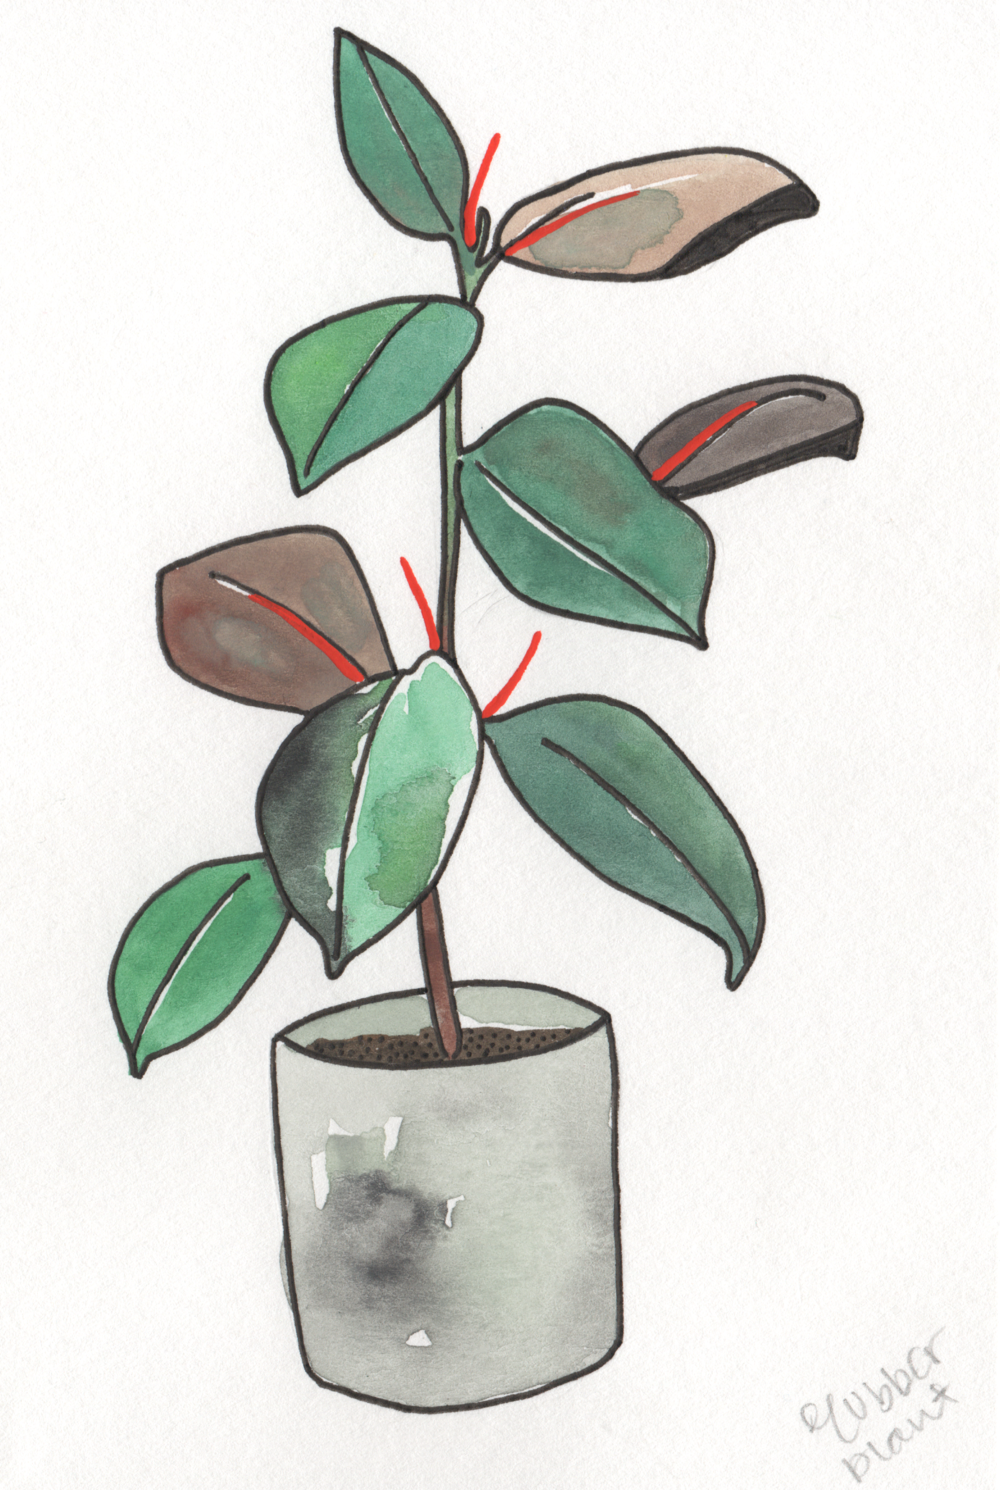 Rubber Plant   Christina Scheppmann Thomas, 2017 Ink & Watercolor on Paper   PRINTS AVAILABLE    Copyright Persika Design Co. LLC - Contact Christina@PersikaDesignCo.com to commission or collaborate!